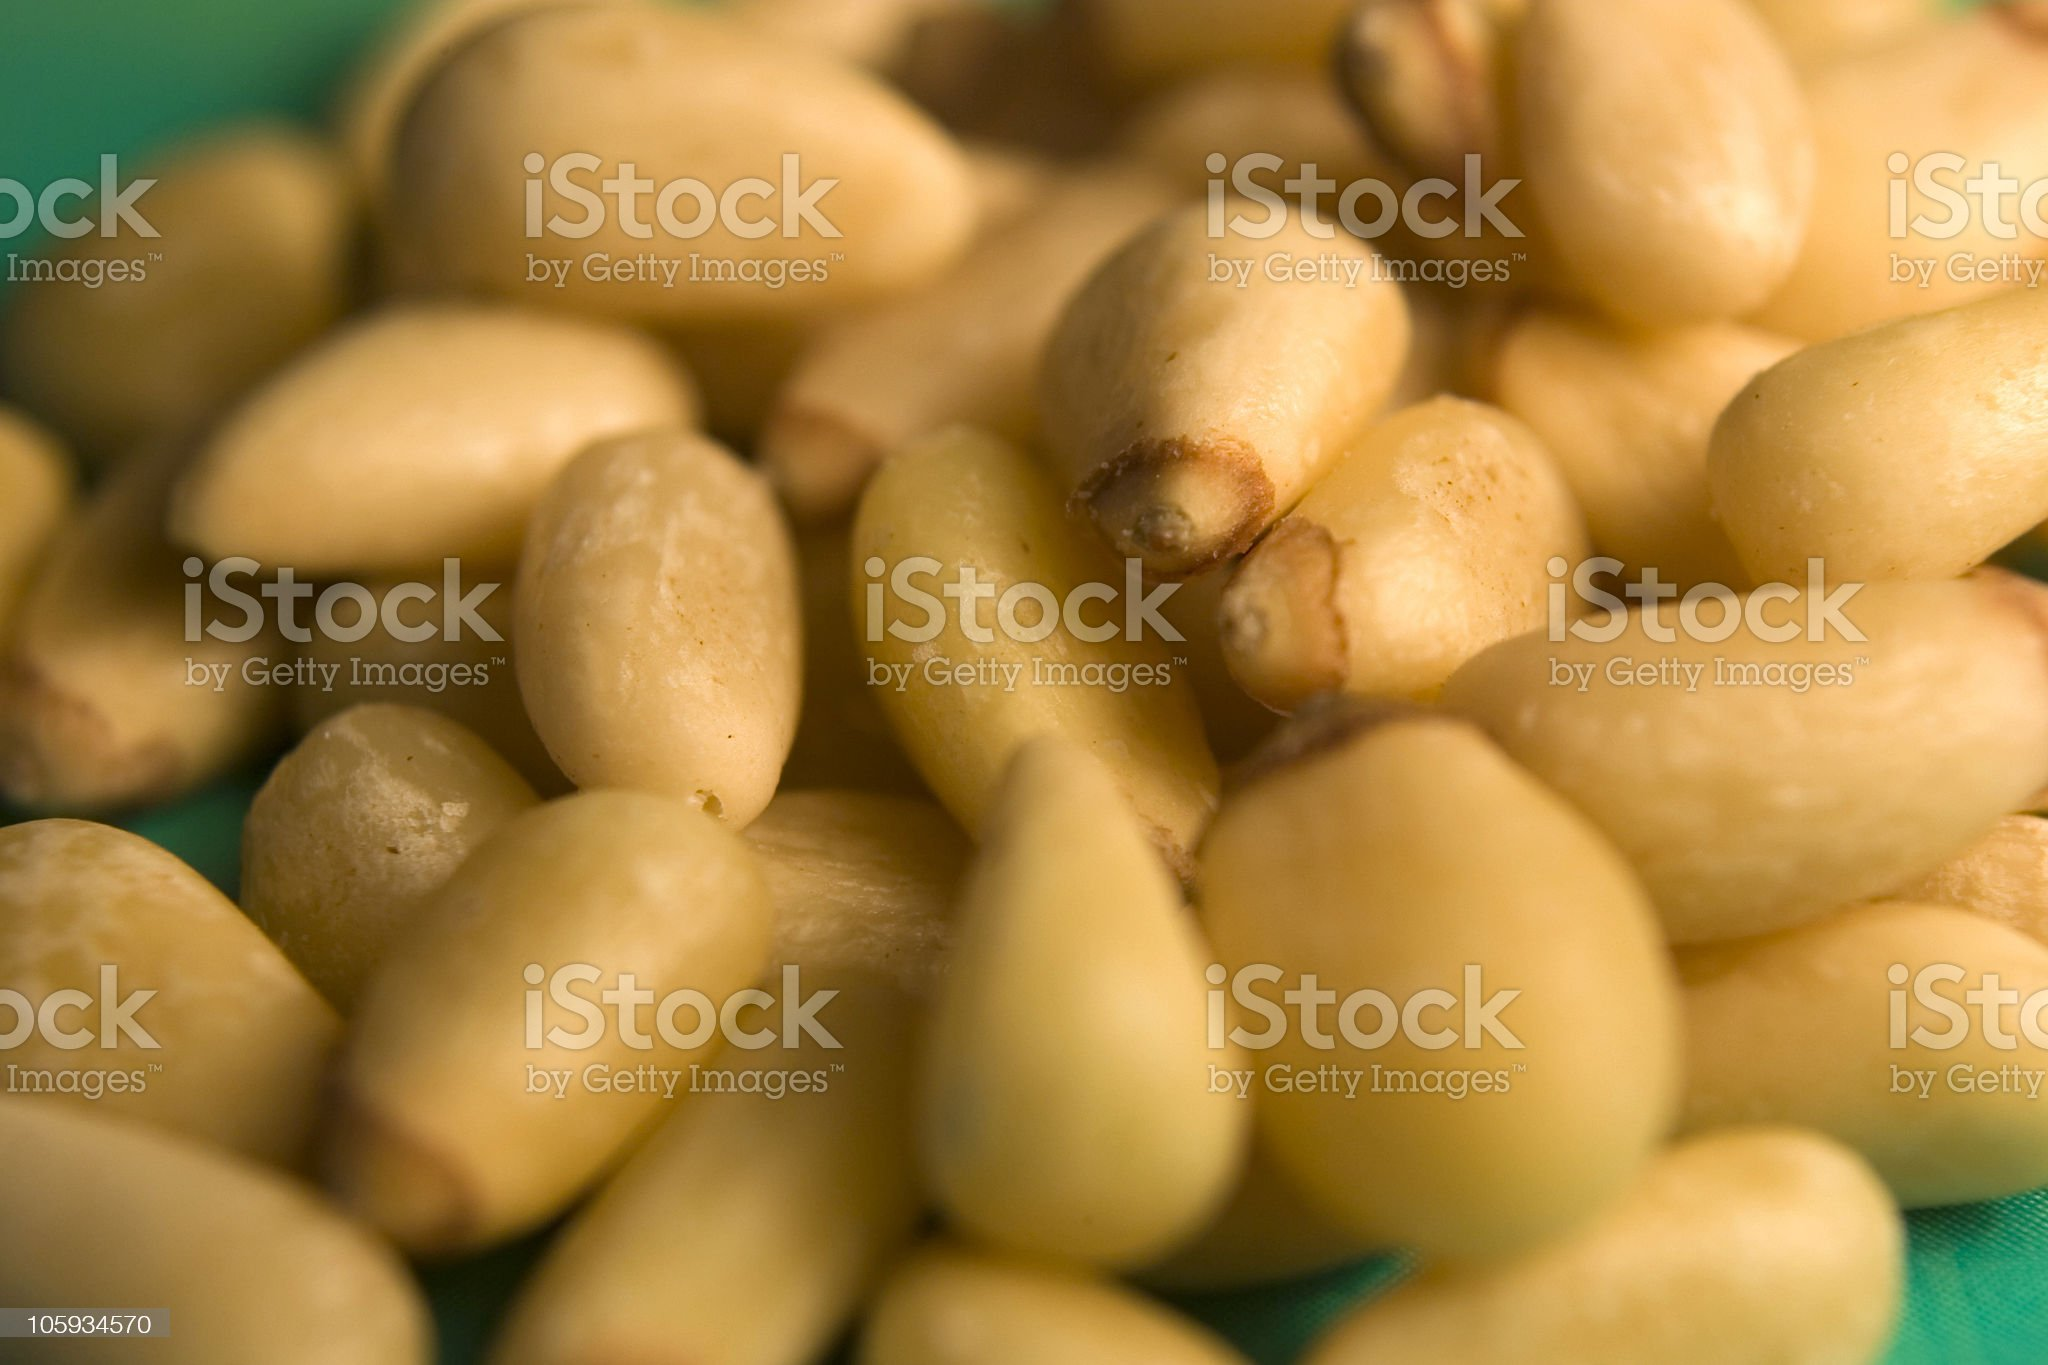 Pine-tree kernel royalty-free stock photo